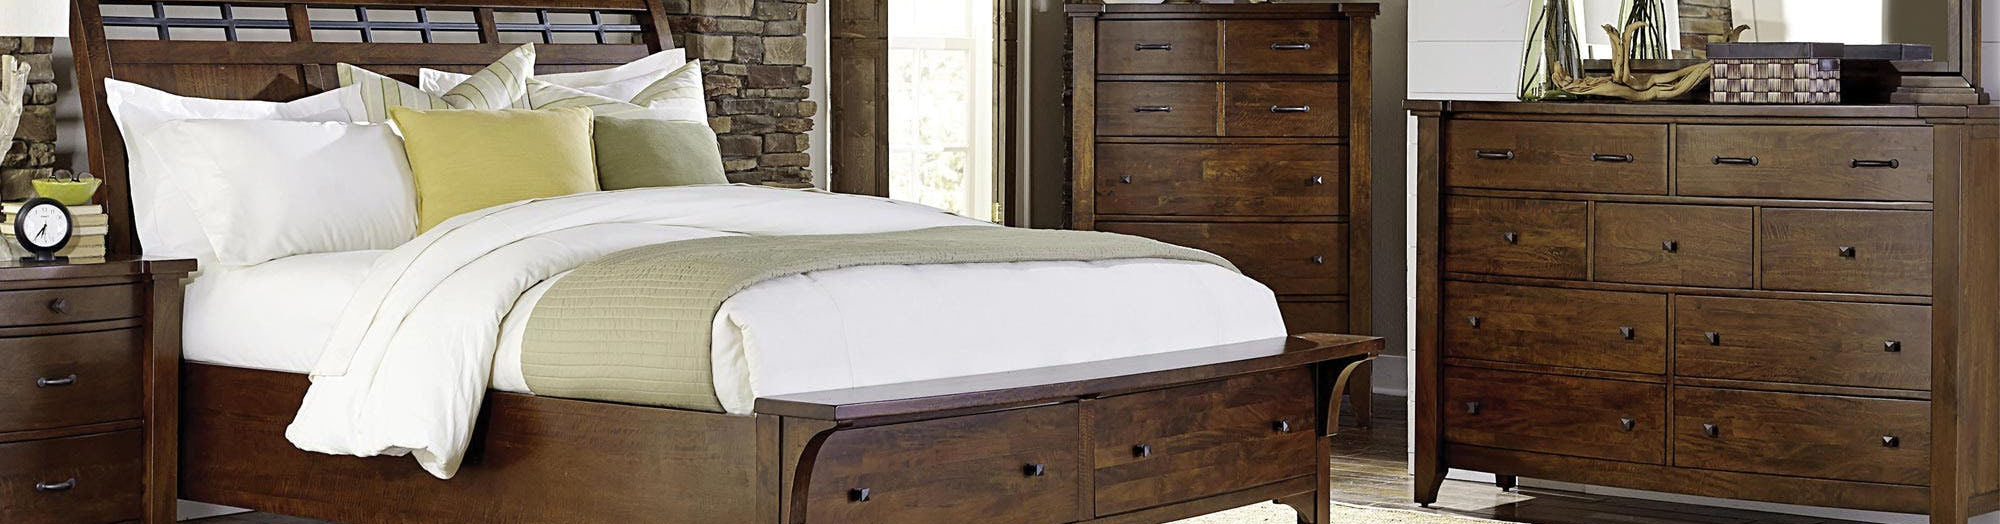 Master Bedroom Furniture >> Master Bedroom Furniture Fair Cincinnati Dayton